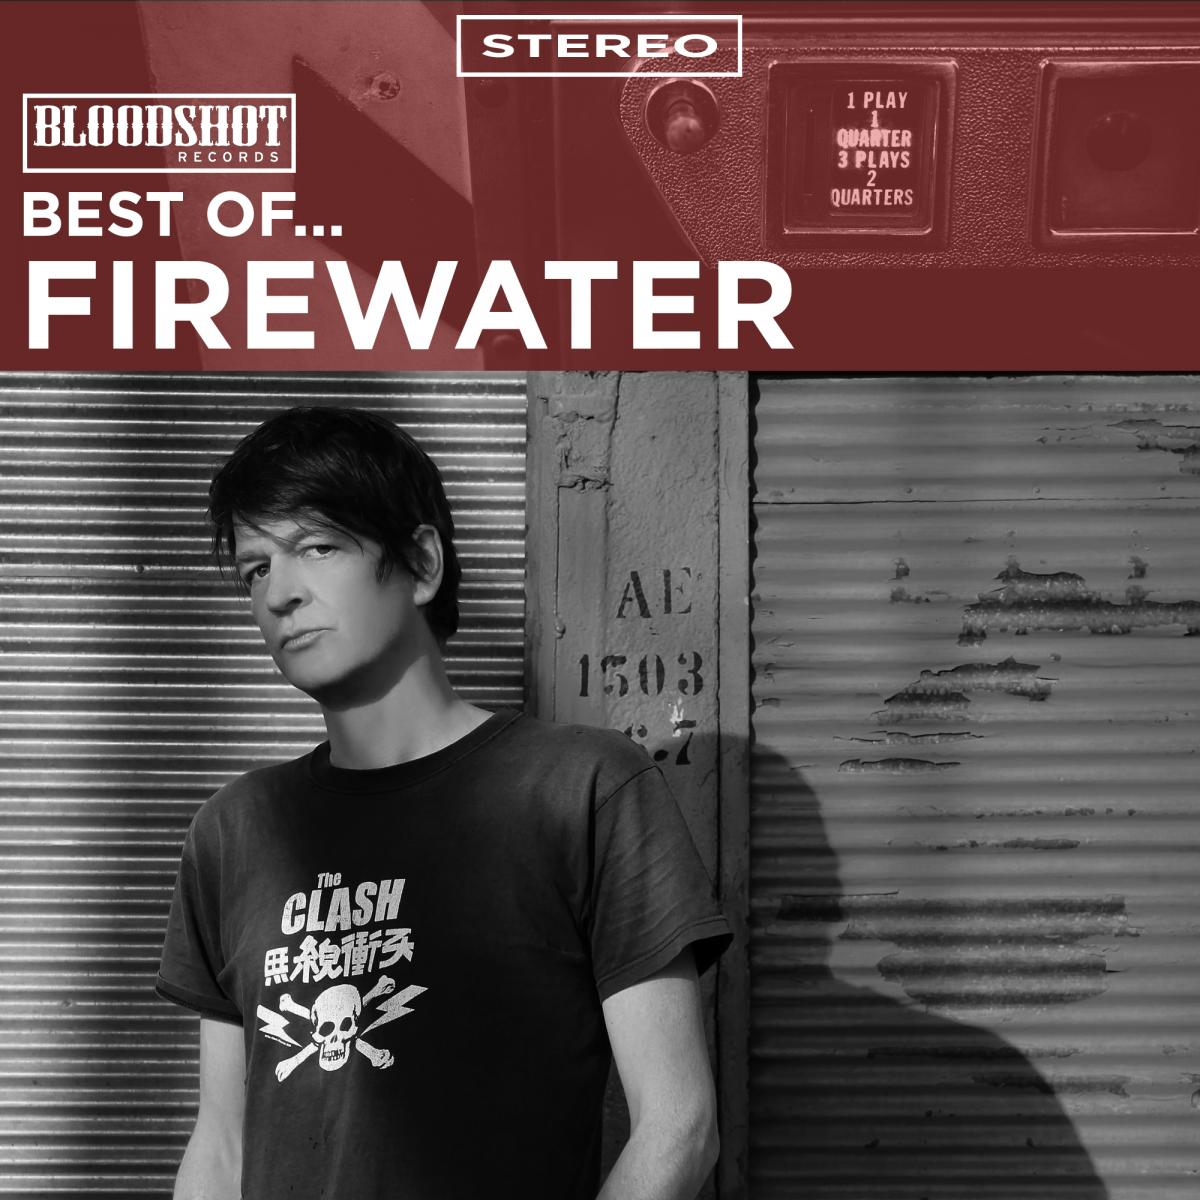 Firewater best of